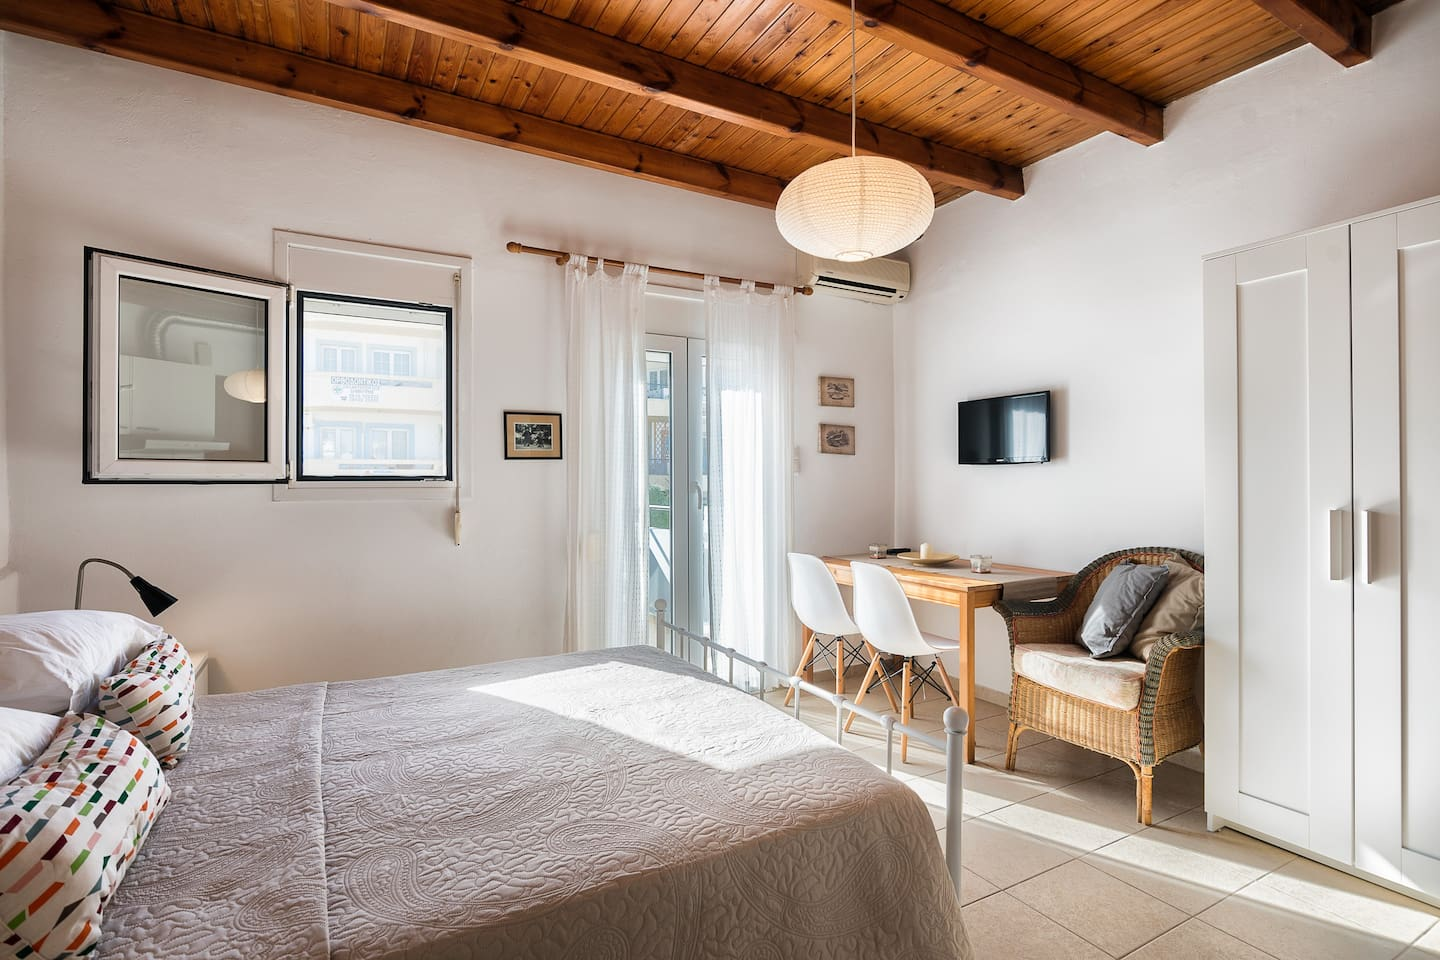 Interior of the apartment/Freshly Renovated/Double bedroom/Anatomic mattress/Led Tv/Table for food & laptop/Spacious wardrobe/Air-Condition/Relaxed Sofa/Wooden Nice Roof